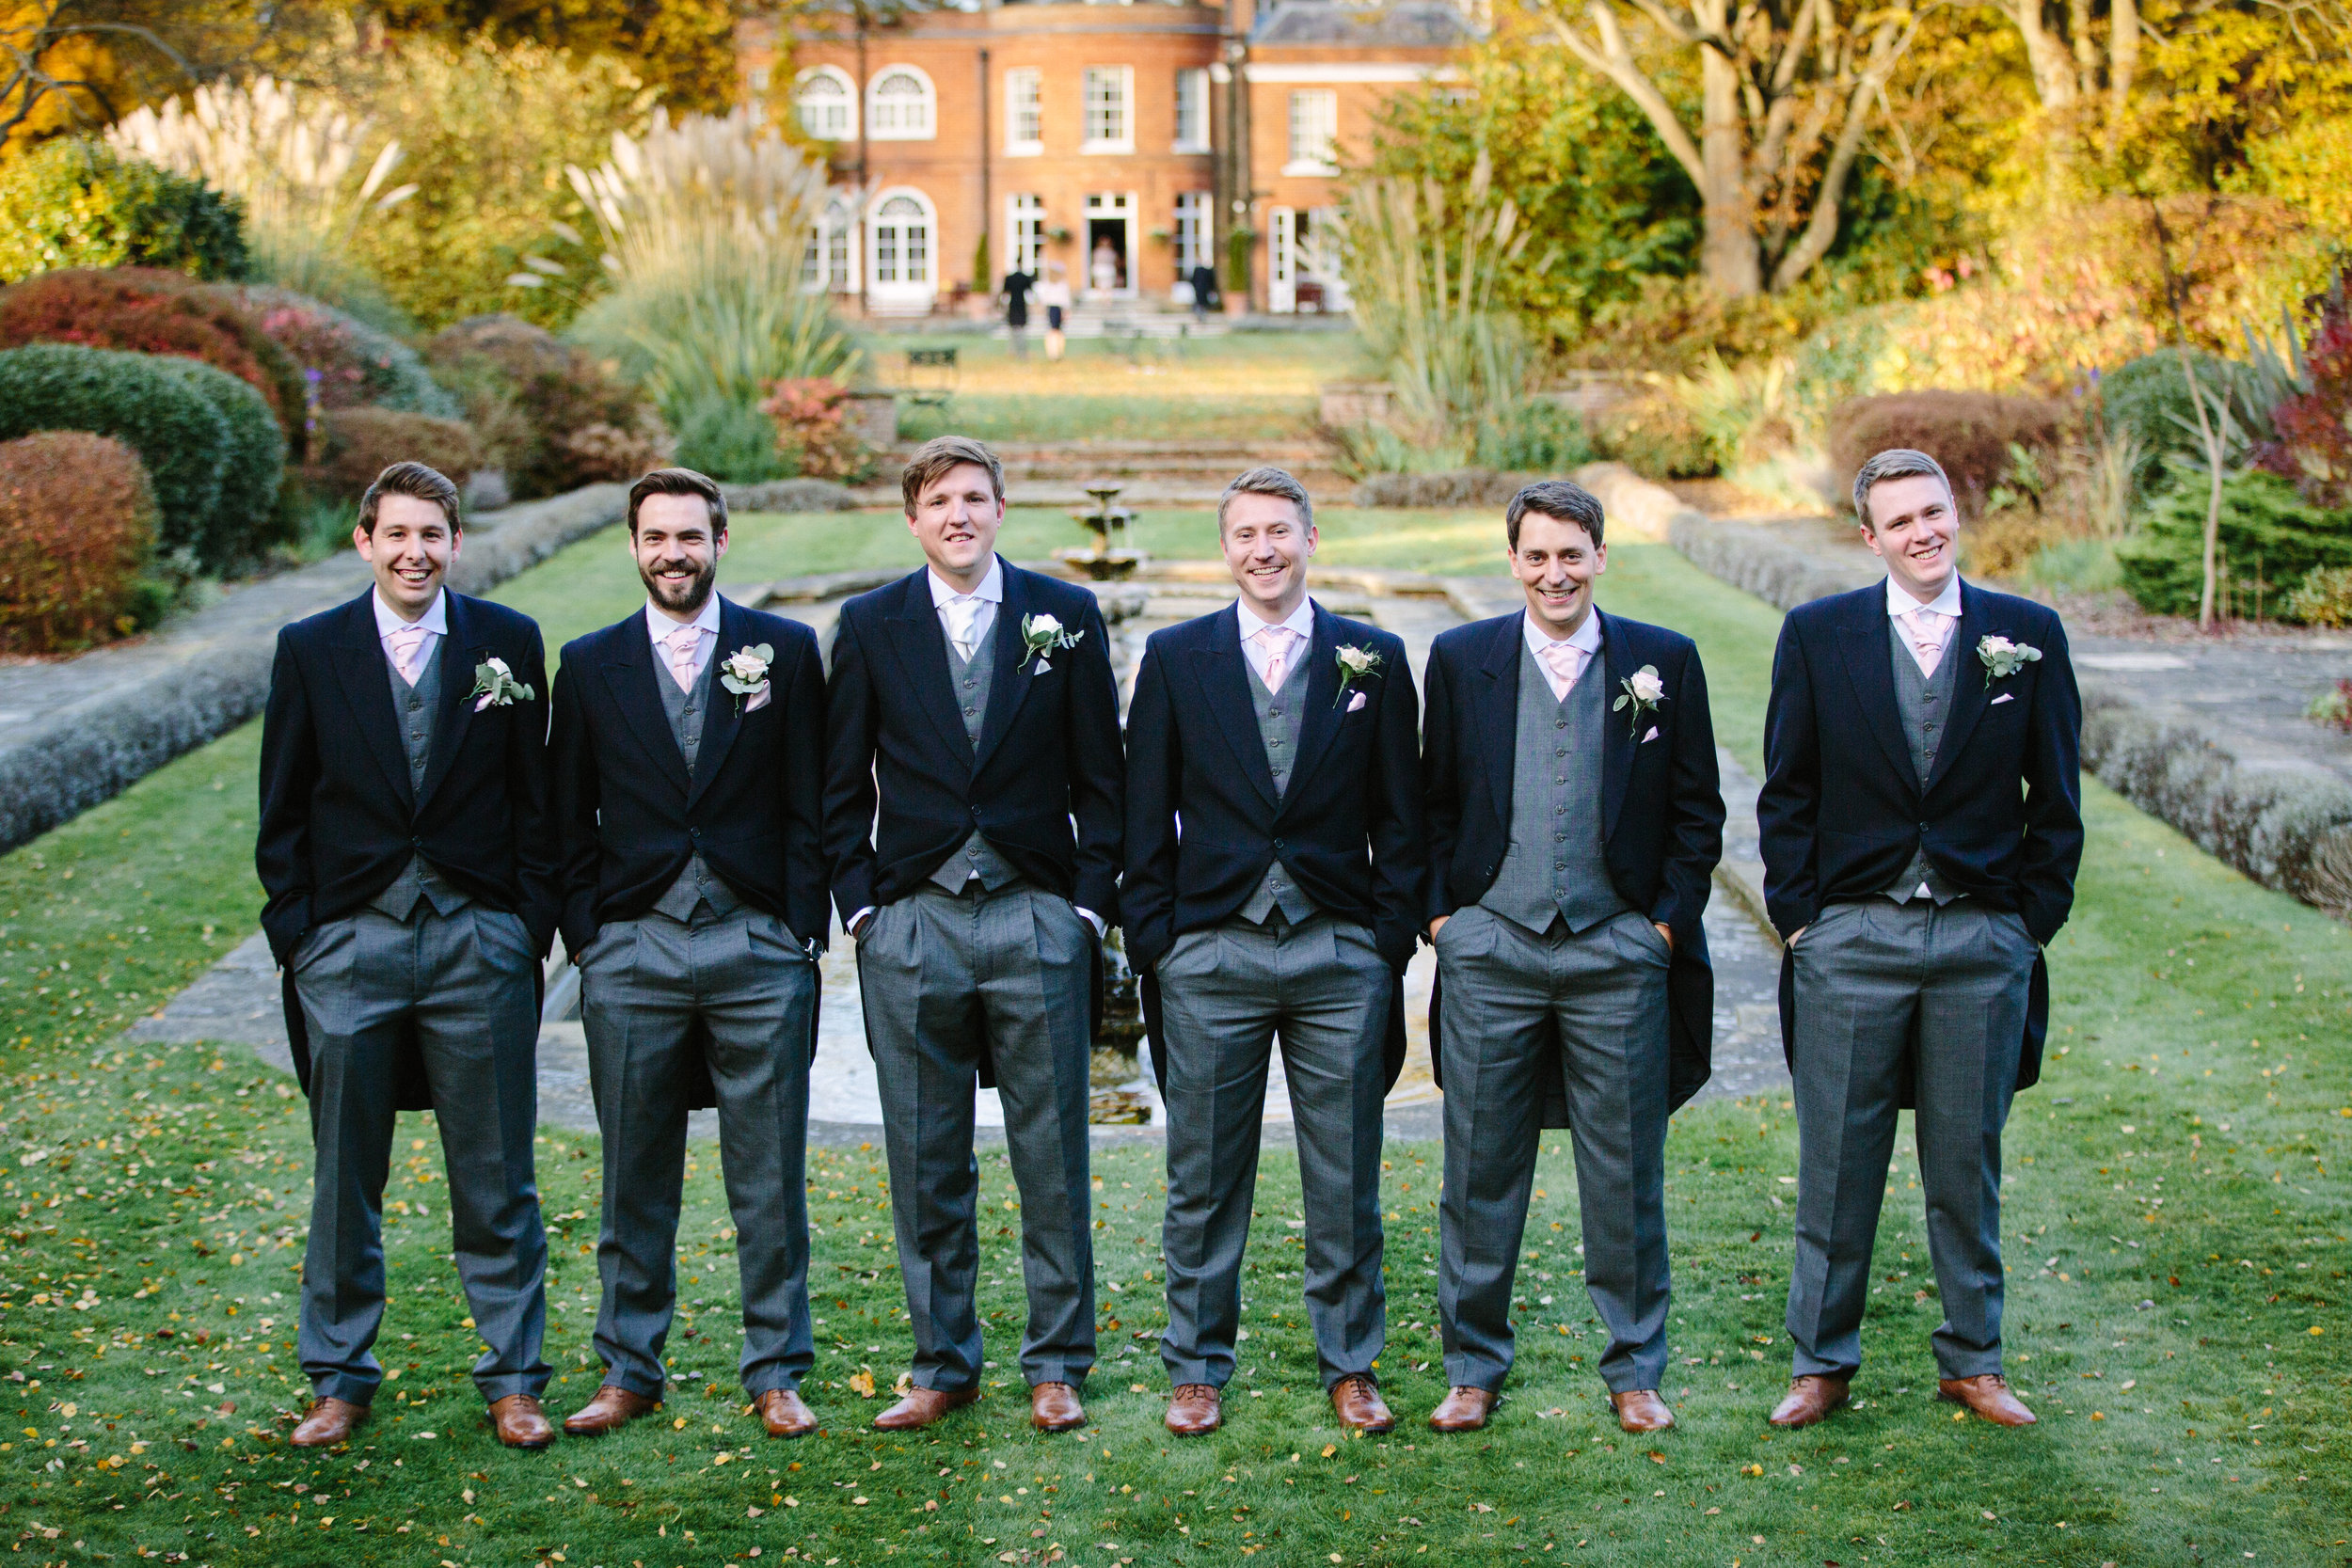 surrey-ascot-royal-berkshire-hotel-autumn-wedding-group-shot-groomsmen-1